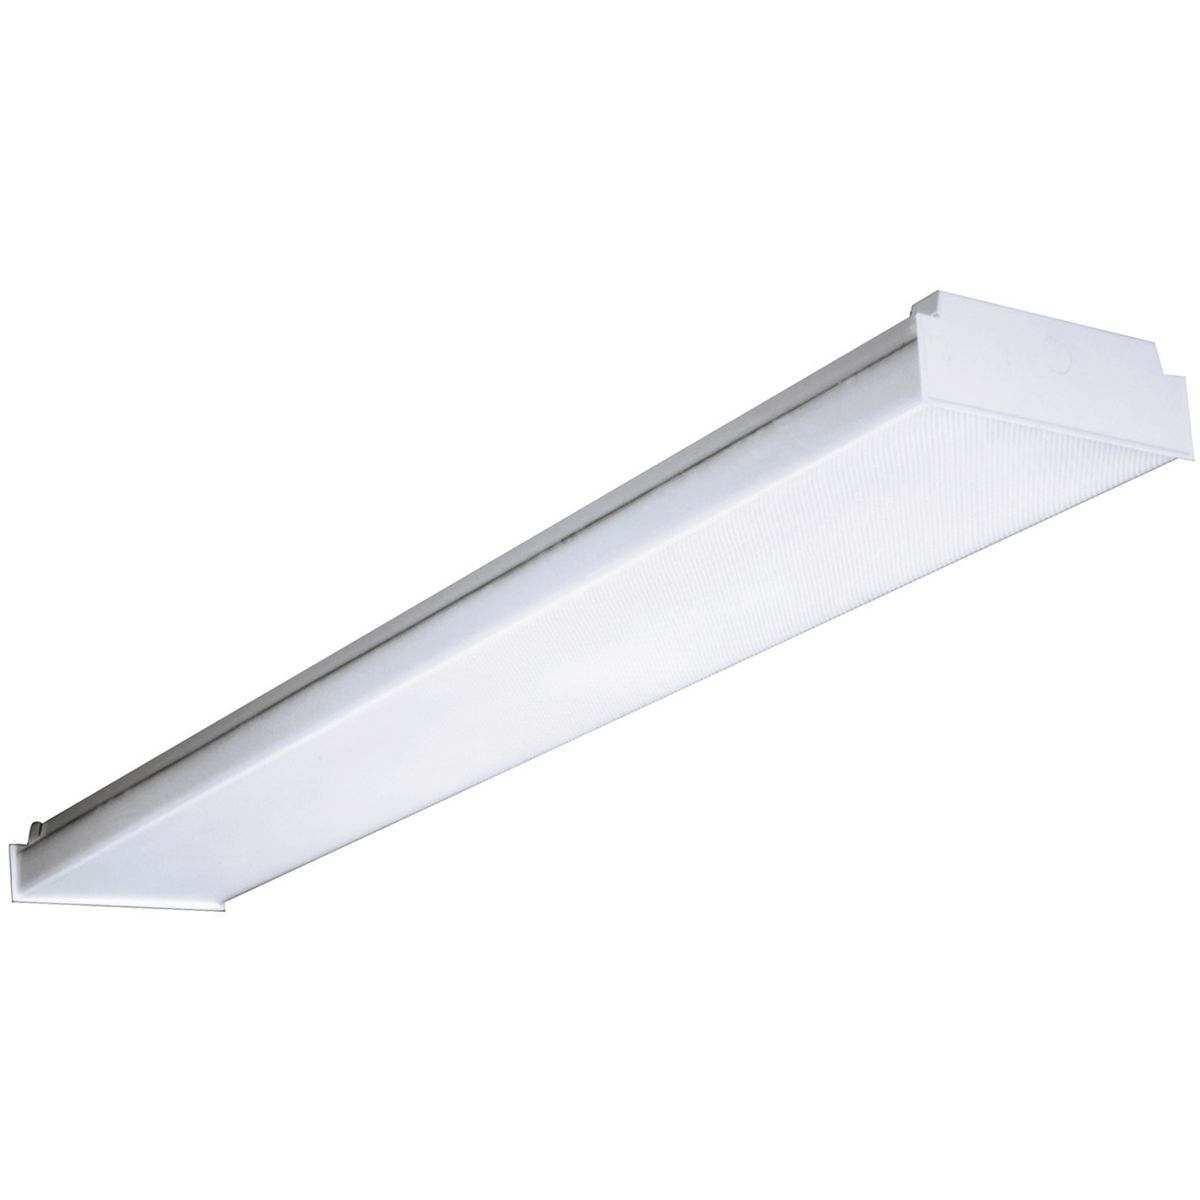 Columbia Lighting AWN4 LENS Low Profile Replacement Diffuser Fluorescent Wraparound Lens, Fluorescent Lamp, For Use With 2-Lamp T5, T5HO, T8 Fluorescent Wraparound Light Fixture, Acrylic